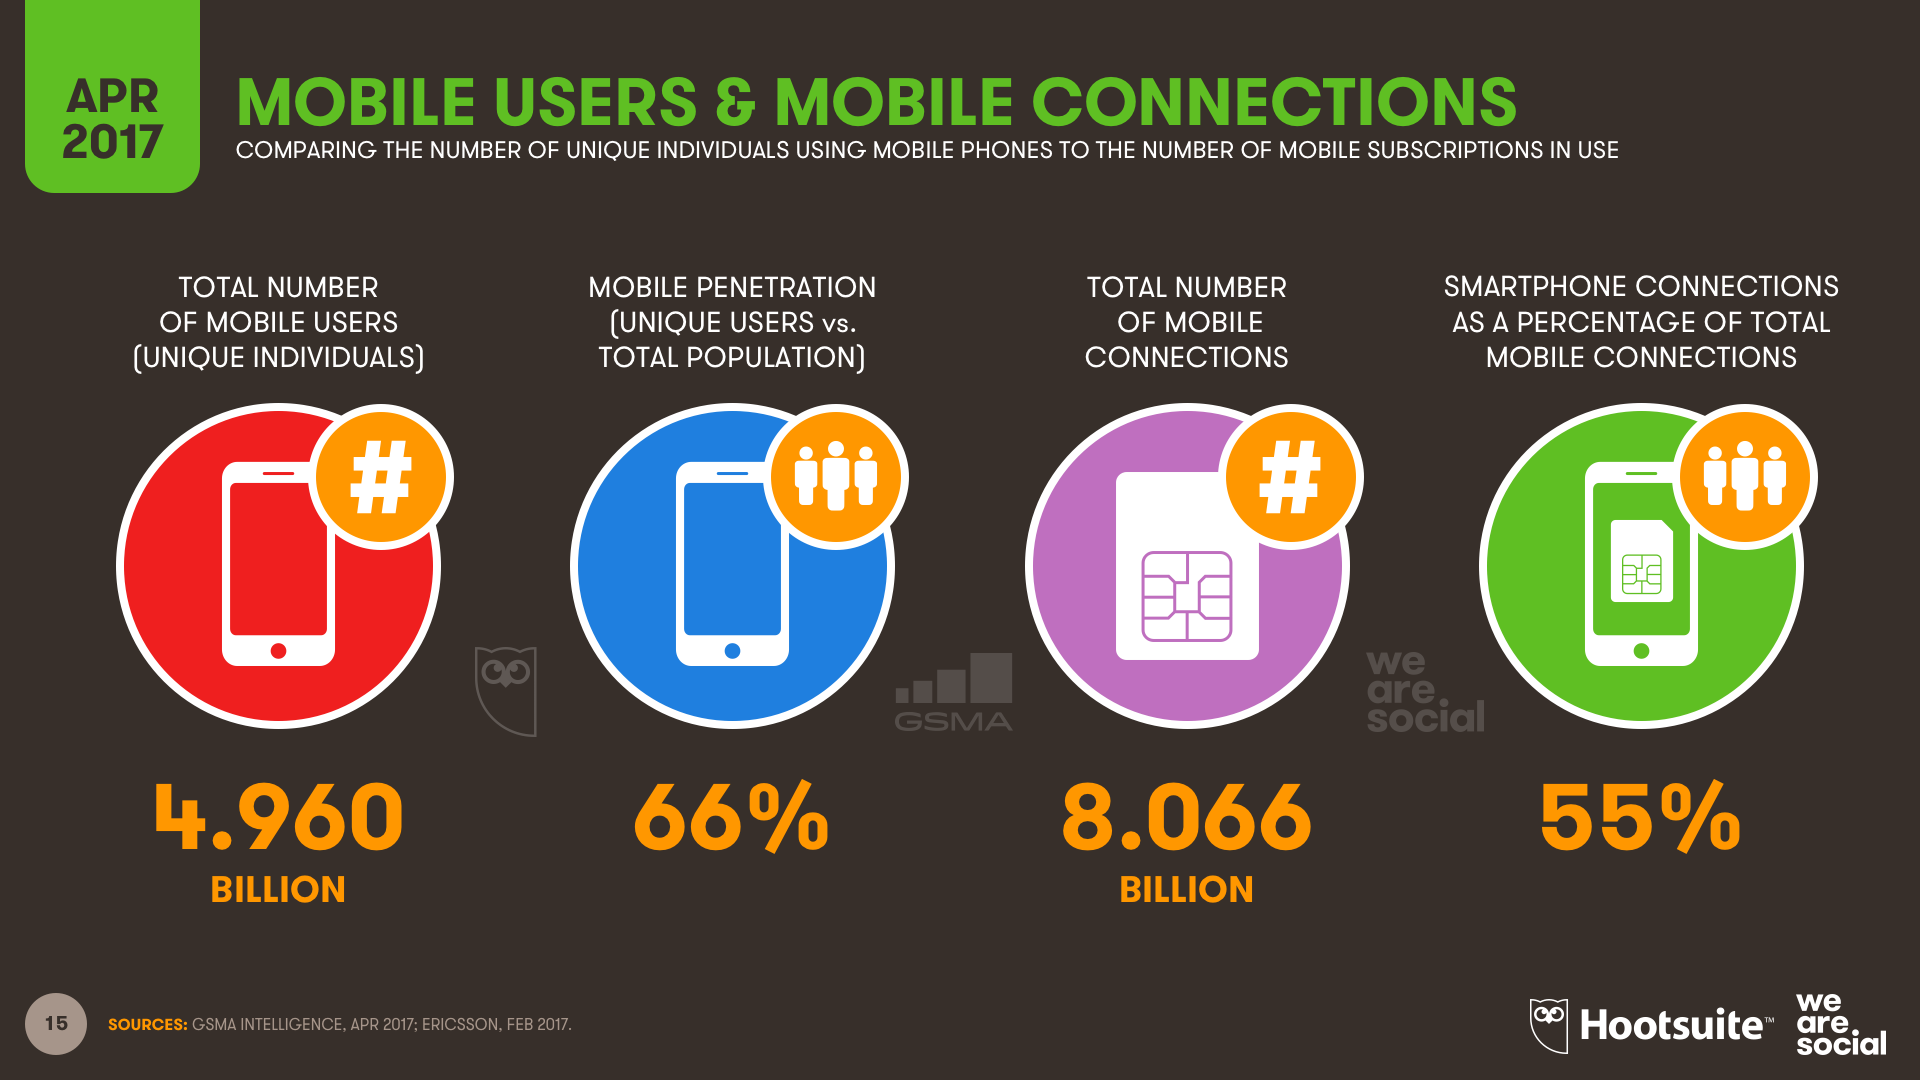 Global mobile penetration